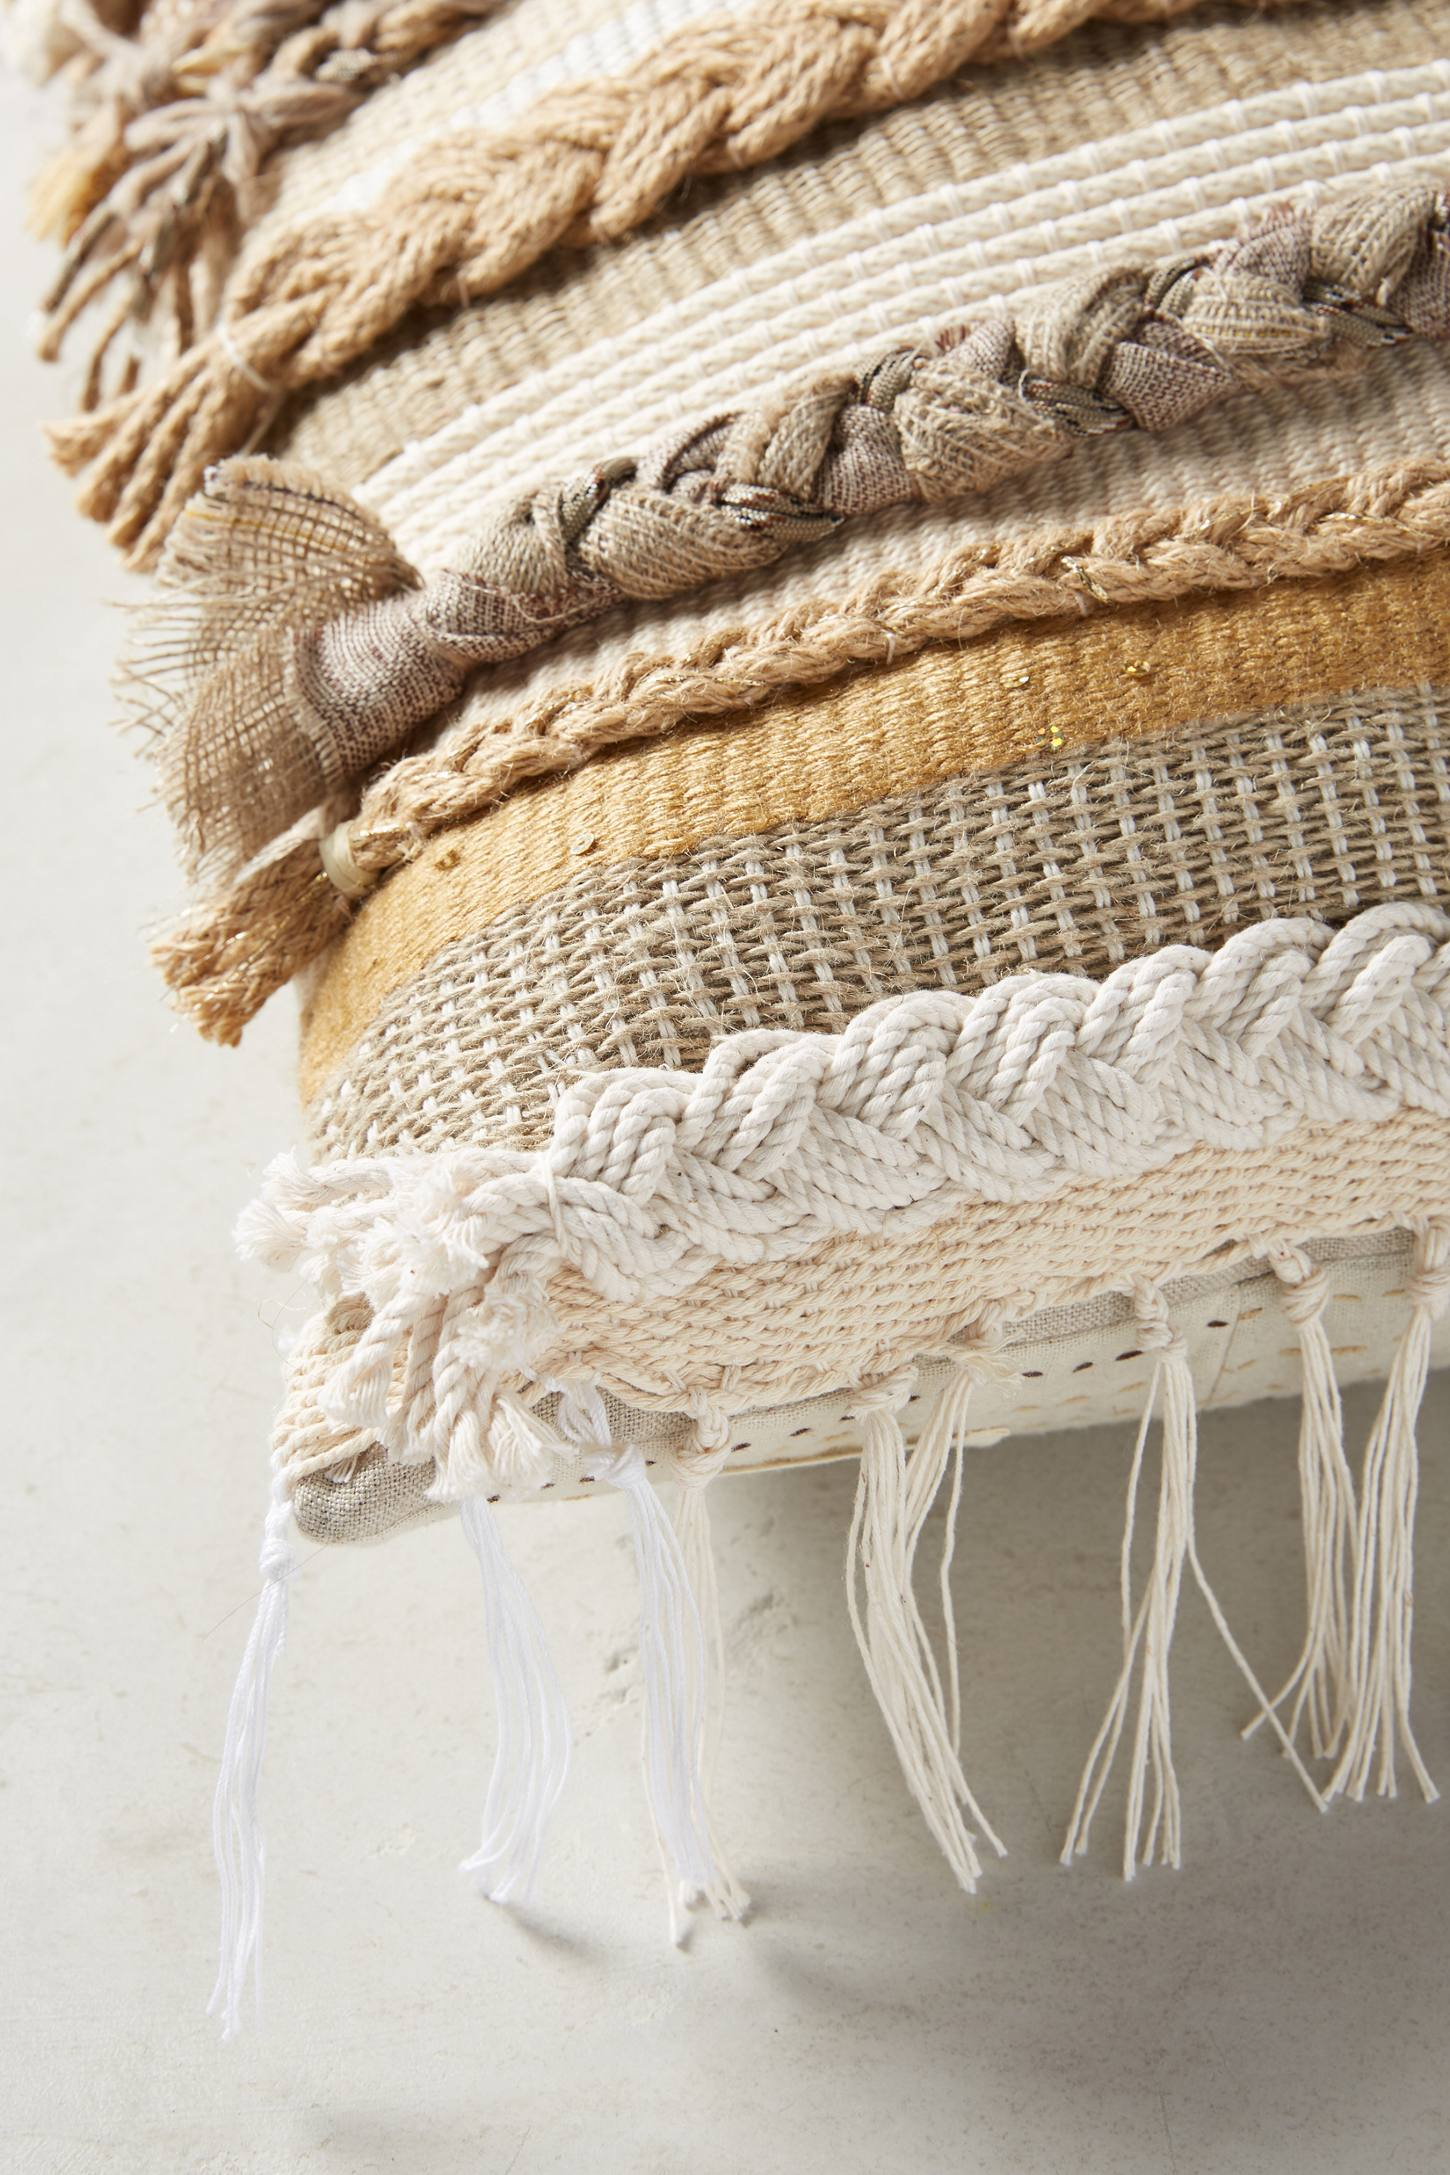 Slide View: 3: Braided & Woven Pillow